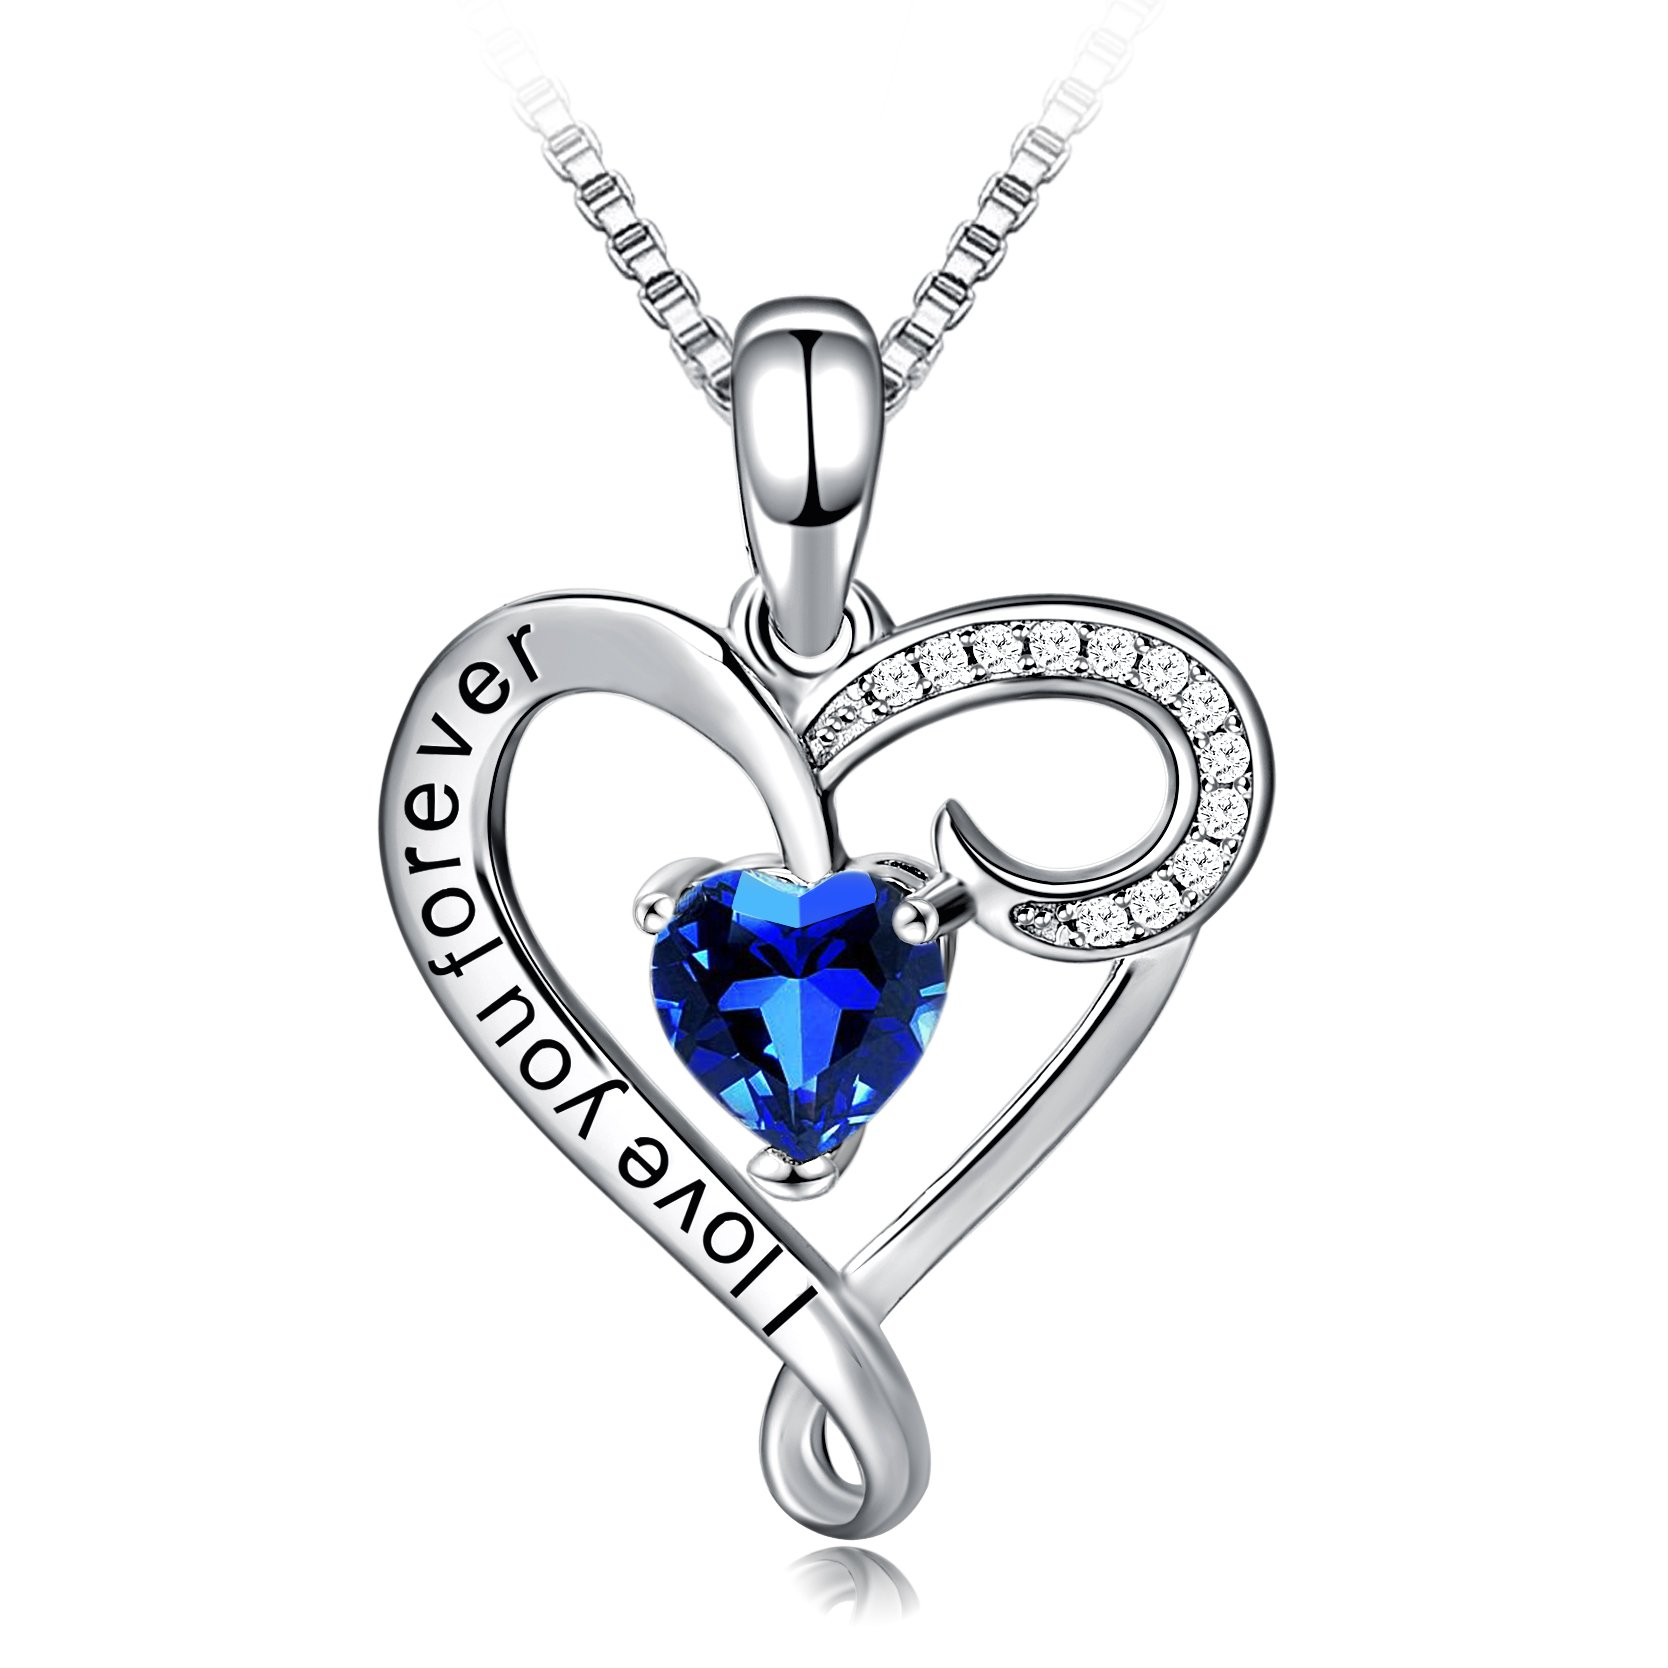 Long Way Necklace,925 Sterling Silver Love You Forever Blue Heart Pendant Necklace Fine Jewelry for Women, Best Gift for Mother Wife Girlfriend at Birthday,Christmas